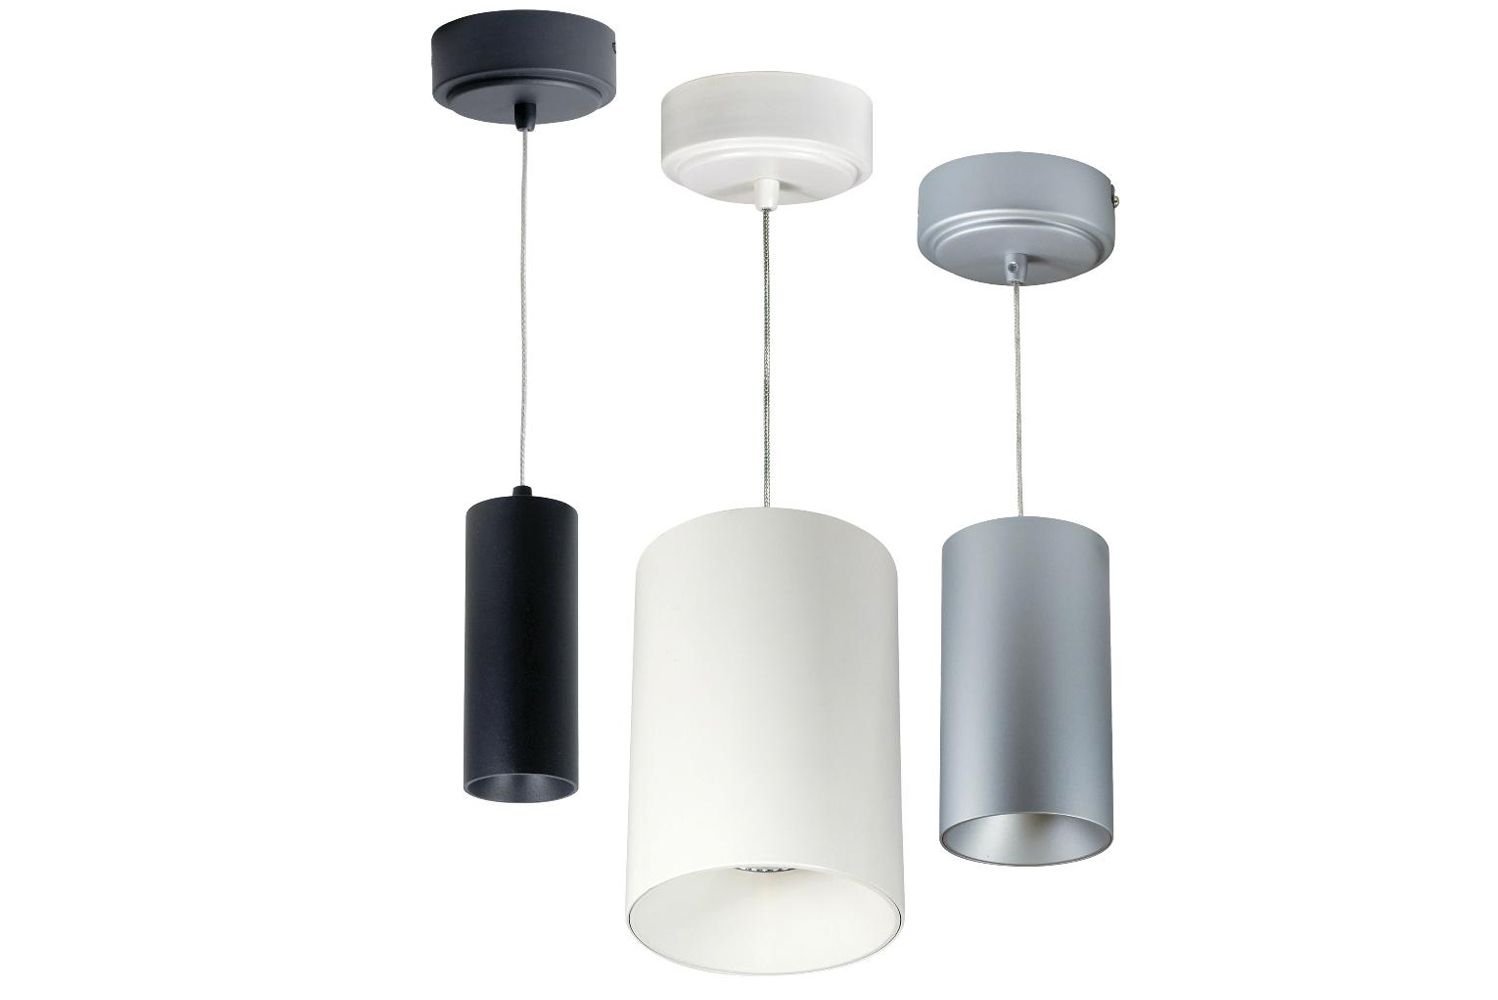 The Nora Ilene LED mini cylinder is a luminaire that can be surface mounted or installed as a cable pendant.